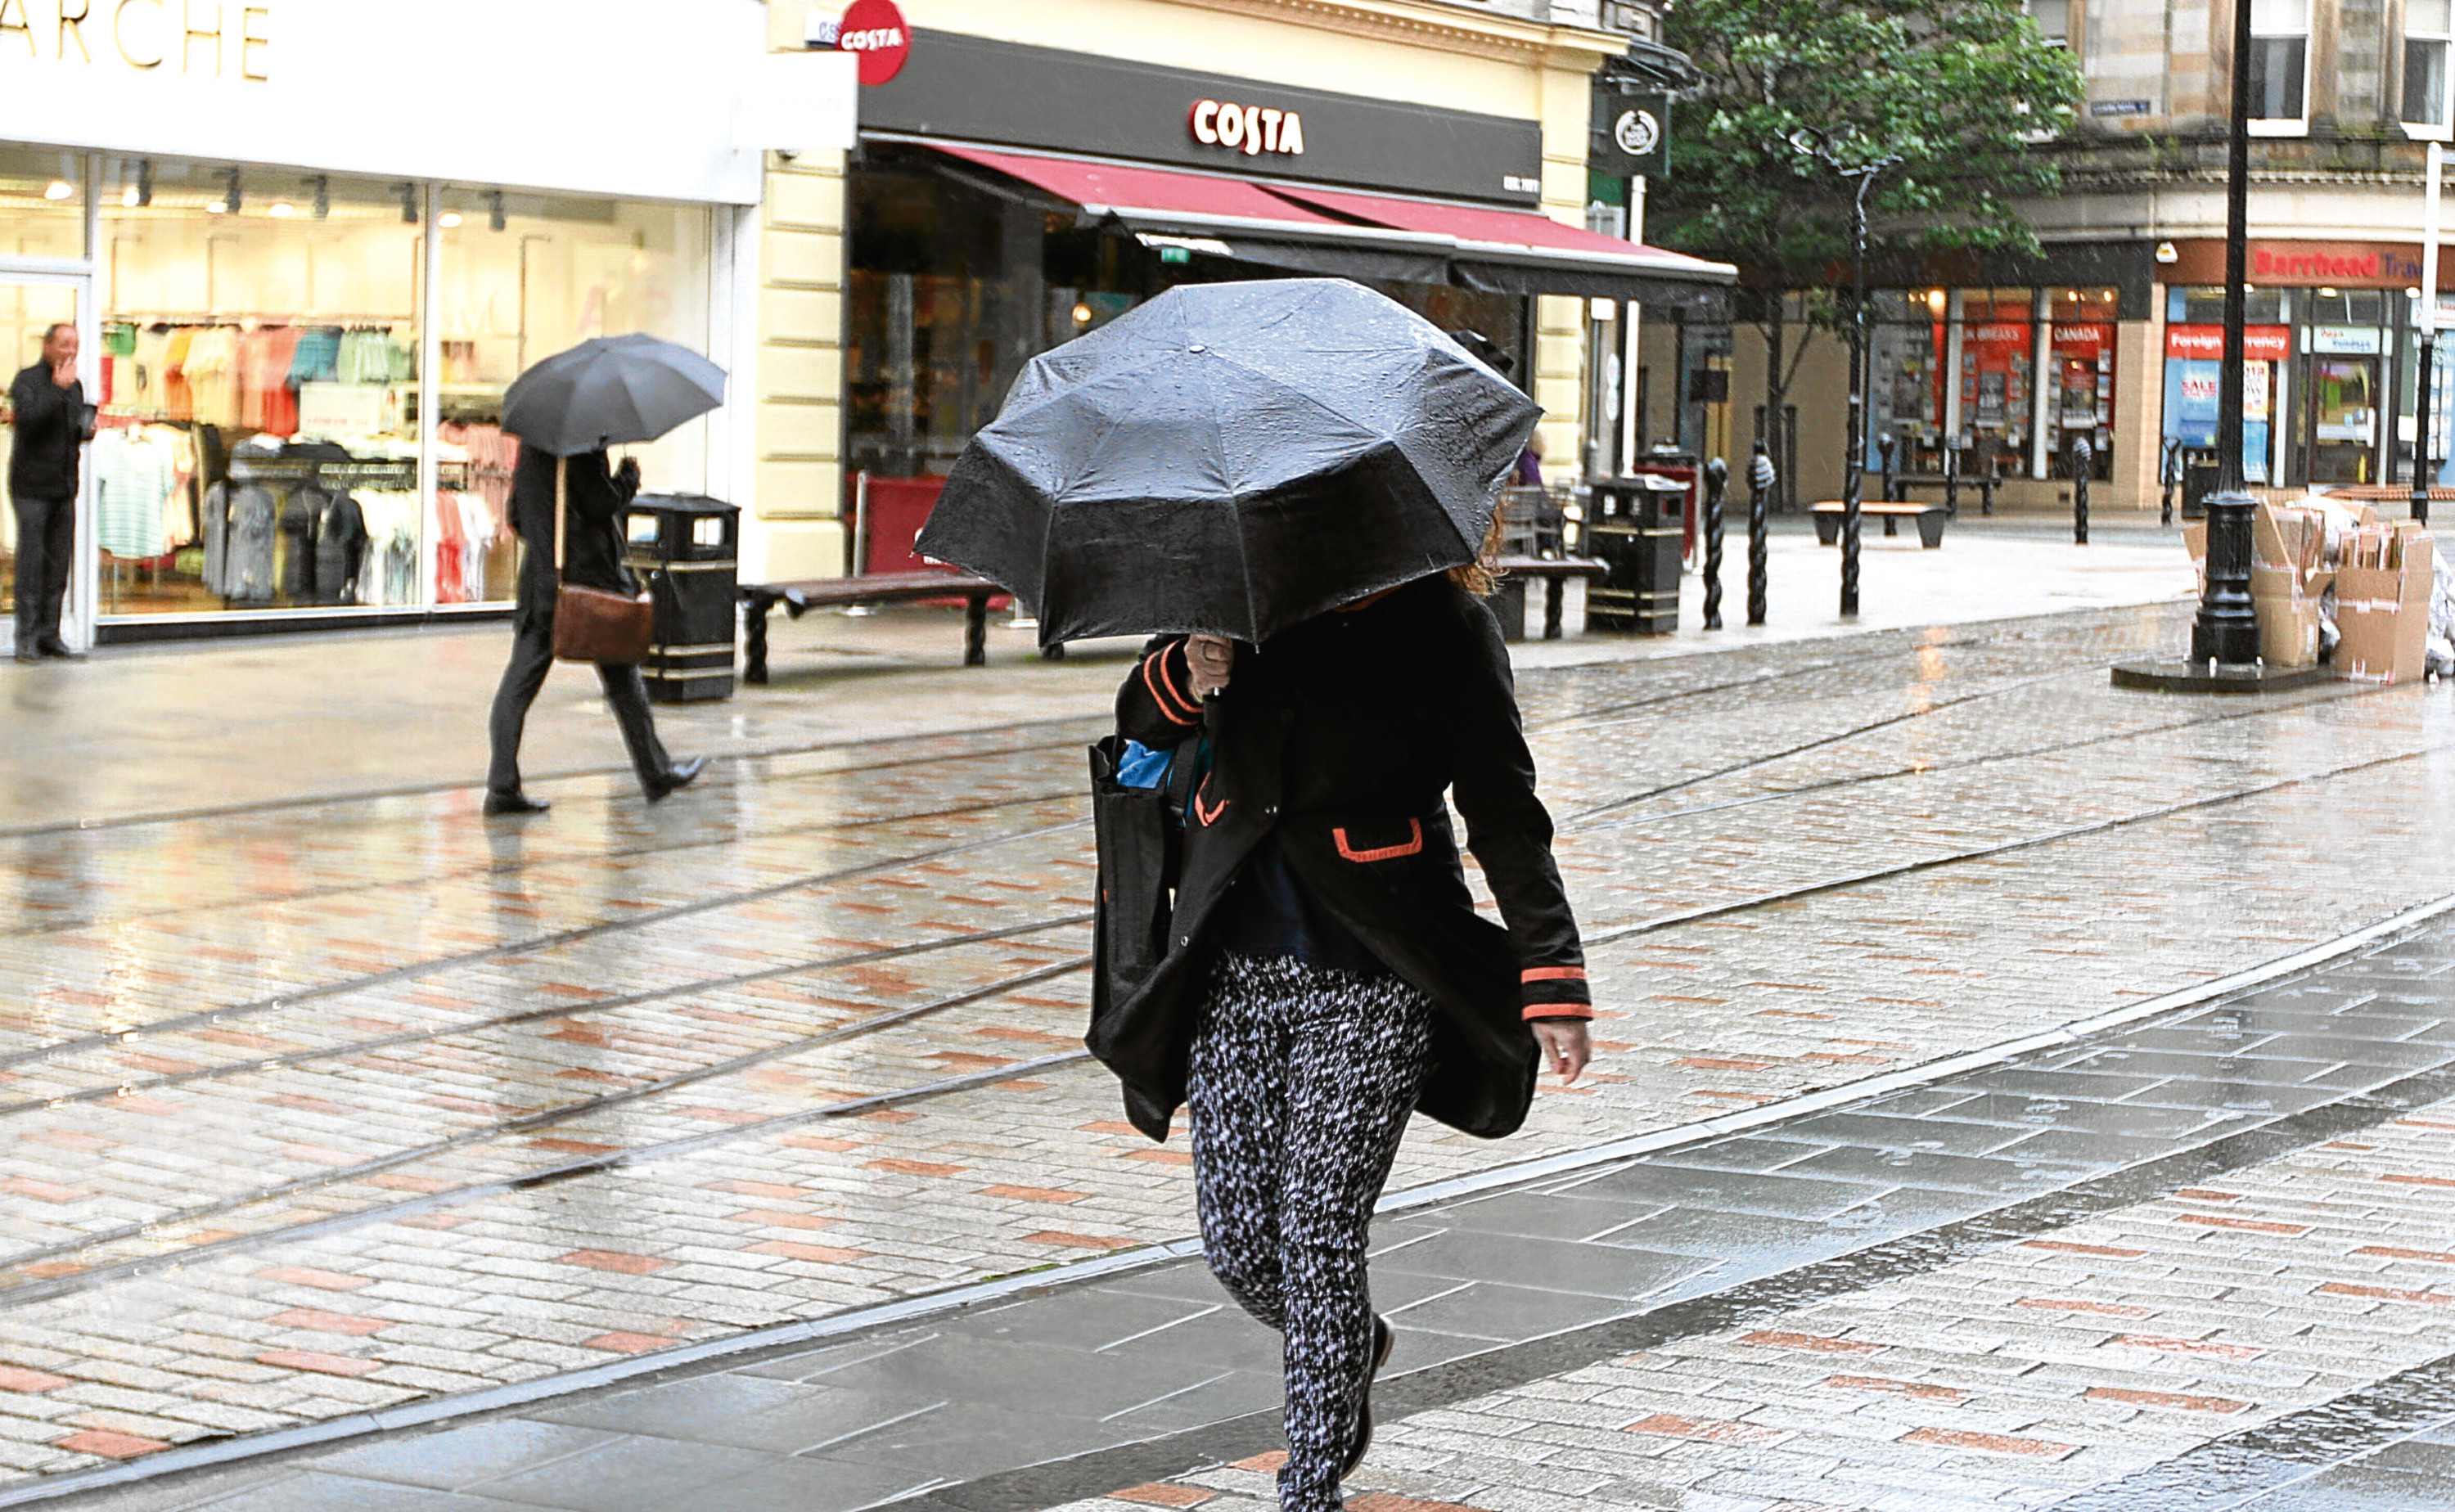 A woman battles the rain during the second-wettest June since 1910.